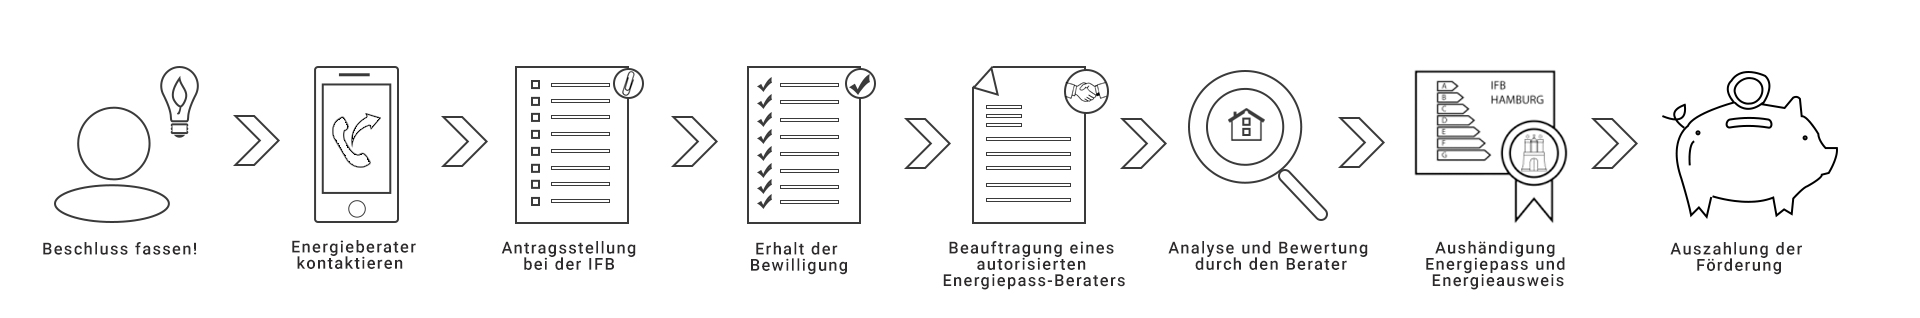 INFENSA_Ablauf_Hamburger-Energiepass